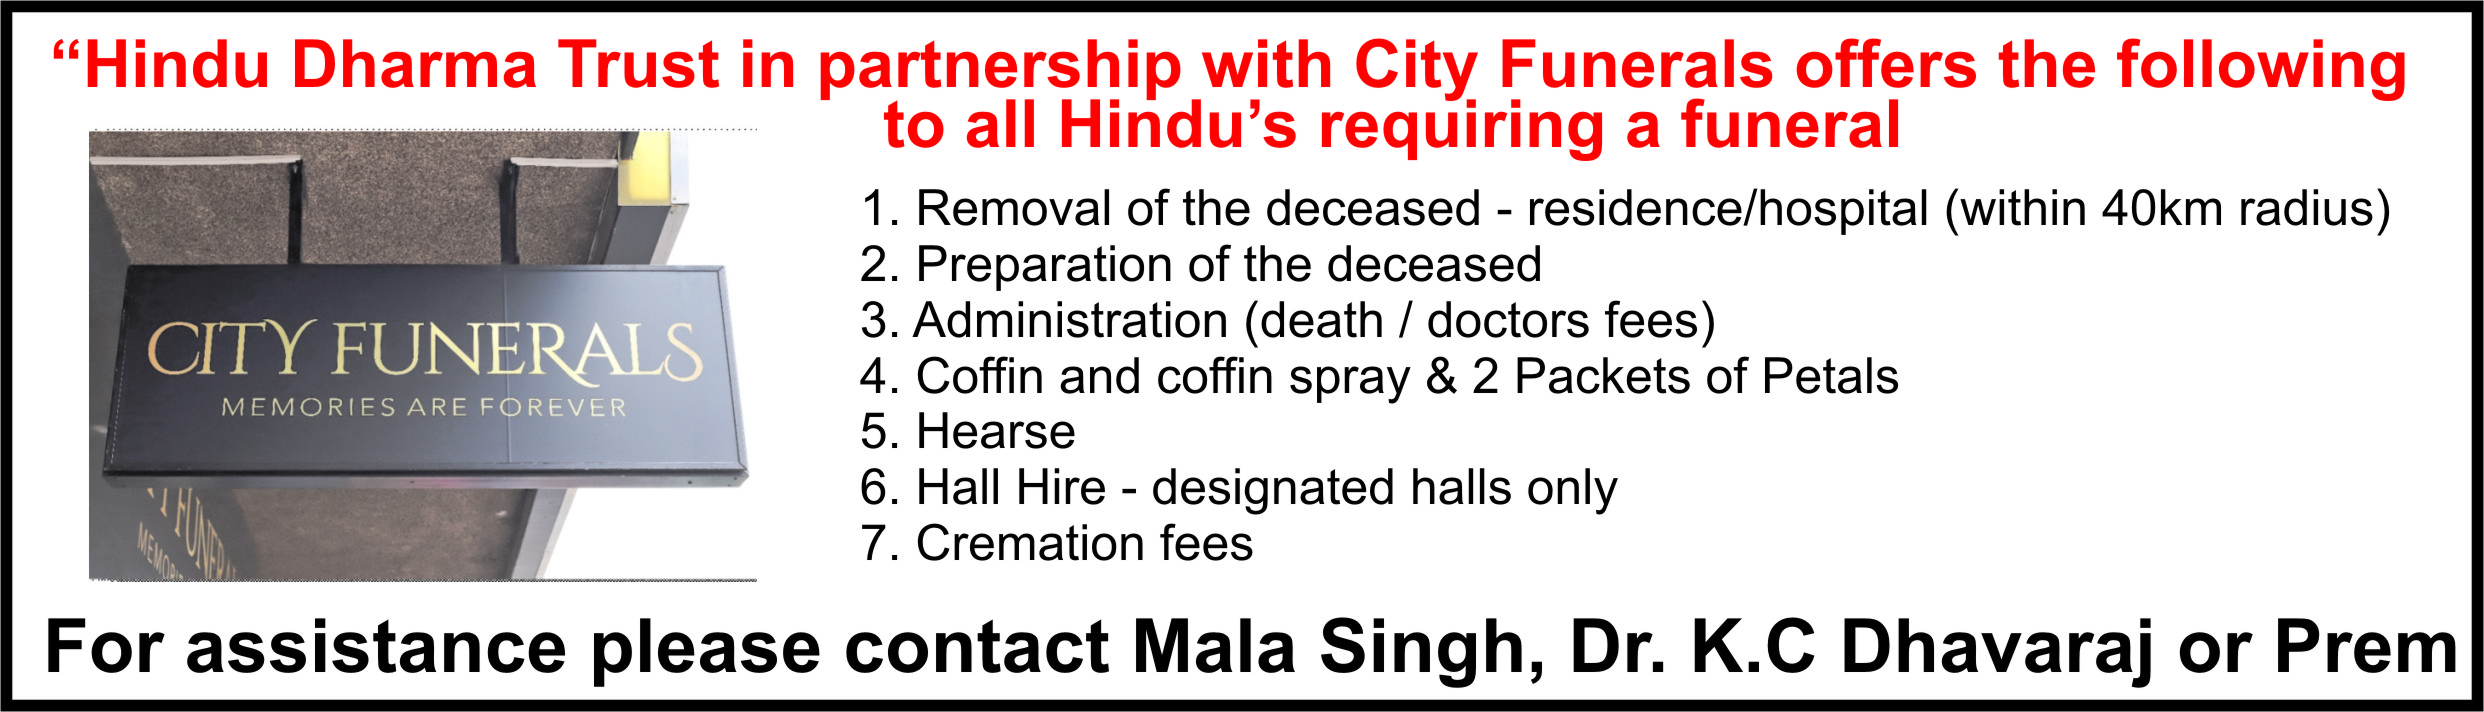 Funeral assistance - who to contact